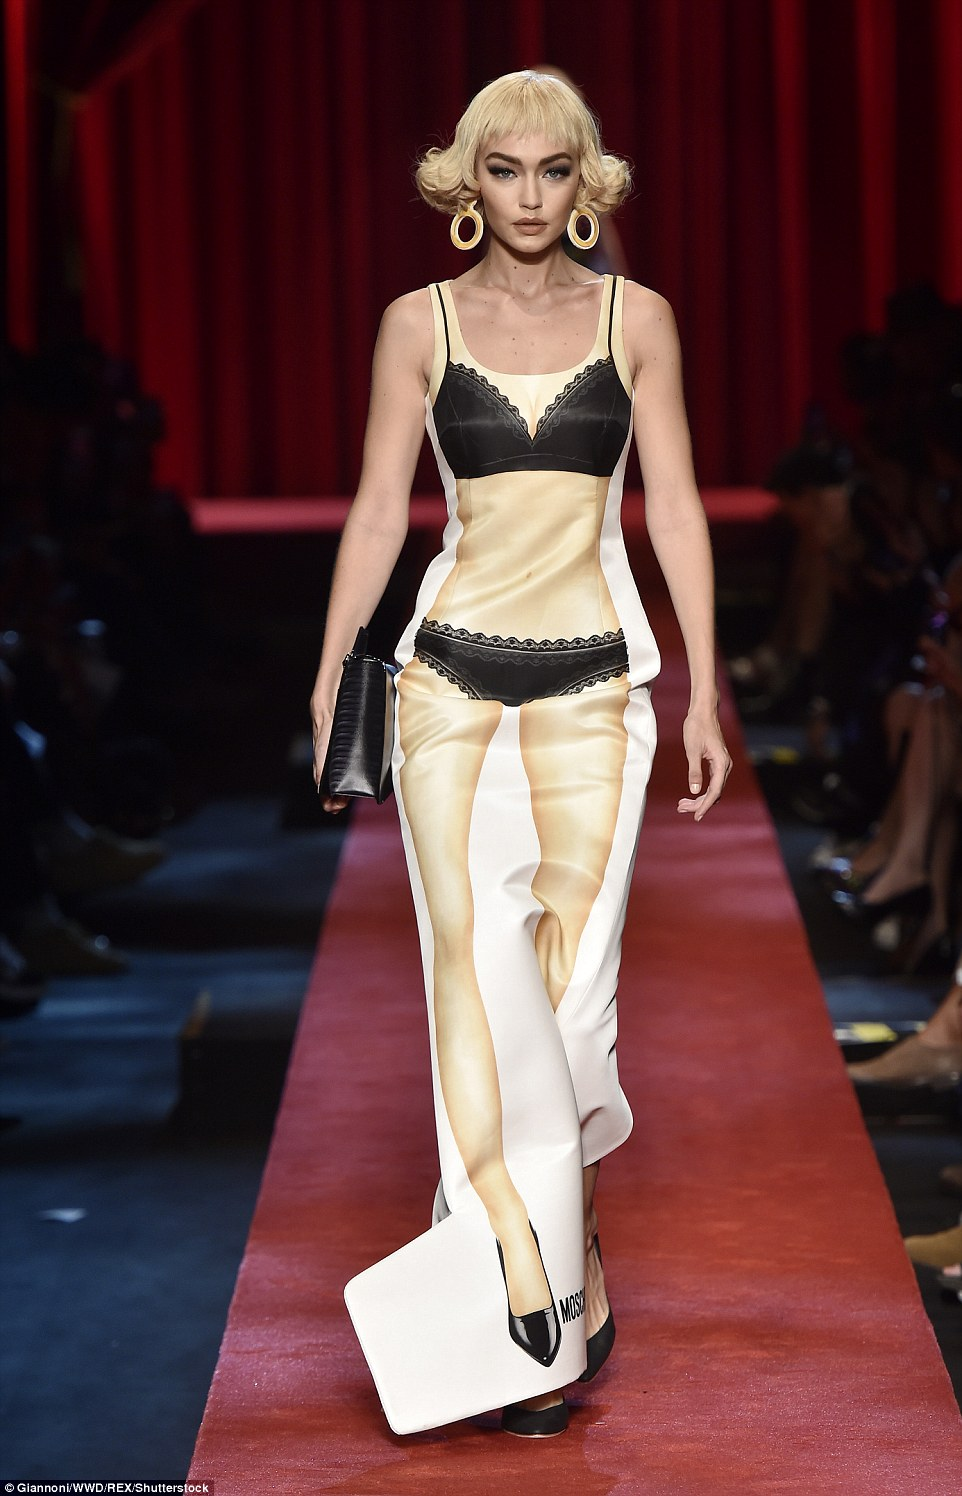 Gigi Hadid turns lingerie clad paper doll for Moschino